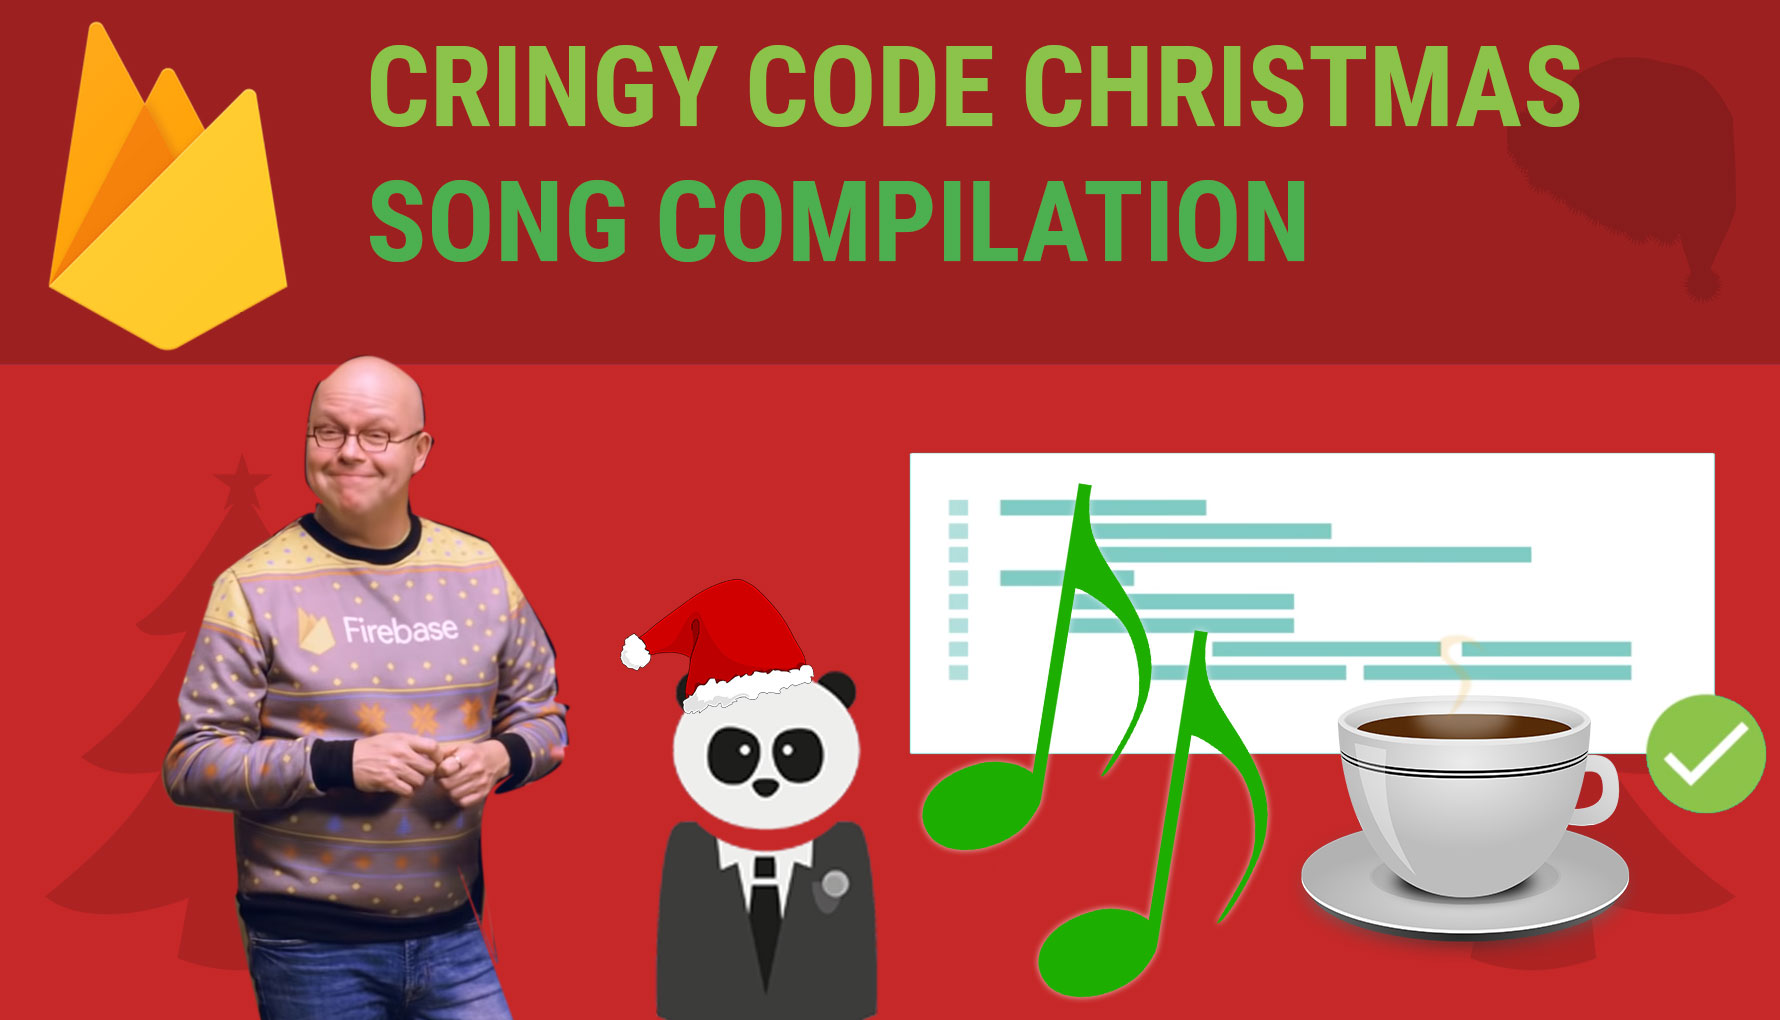 Cringy Code Christmas Song Compilation